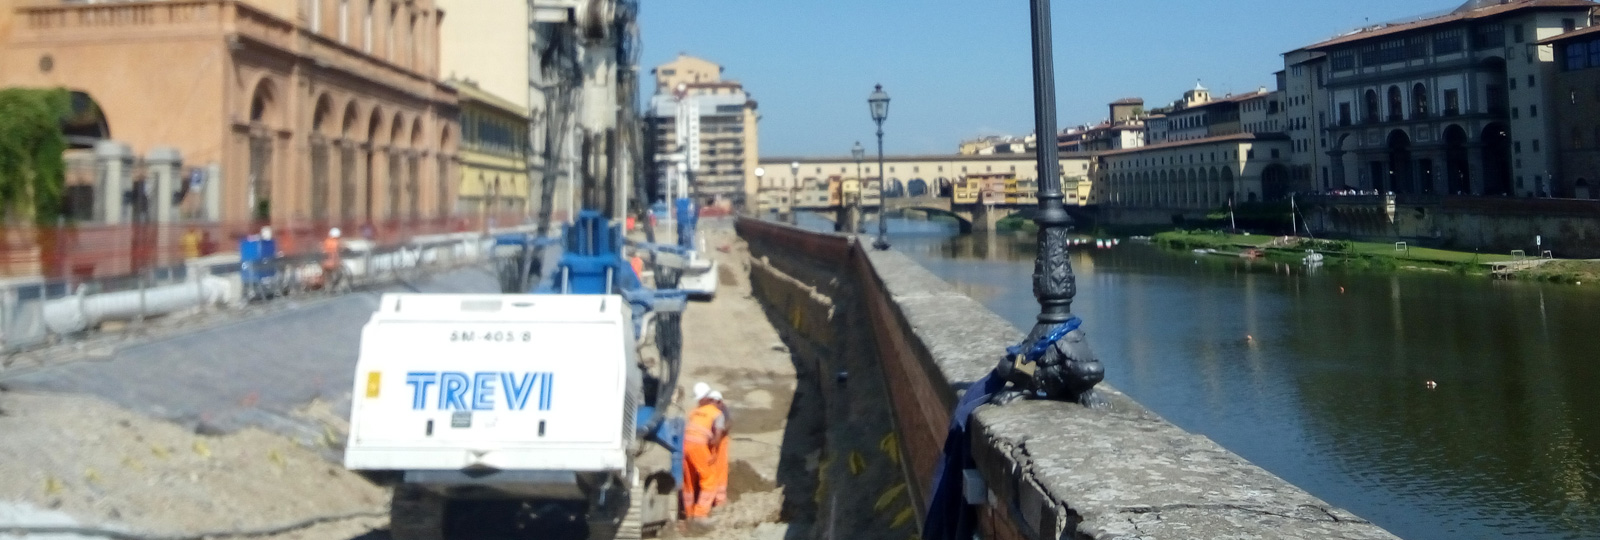 "Embankment protection works for ""Lungarno Torrigiani"""